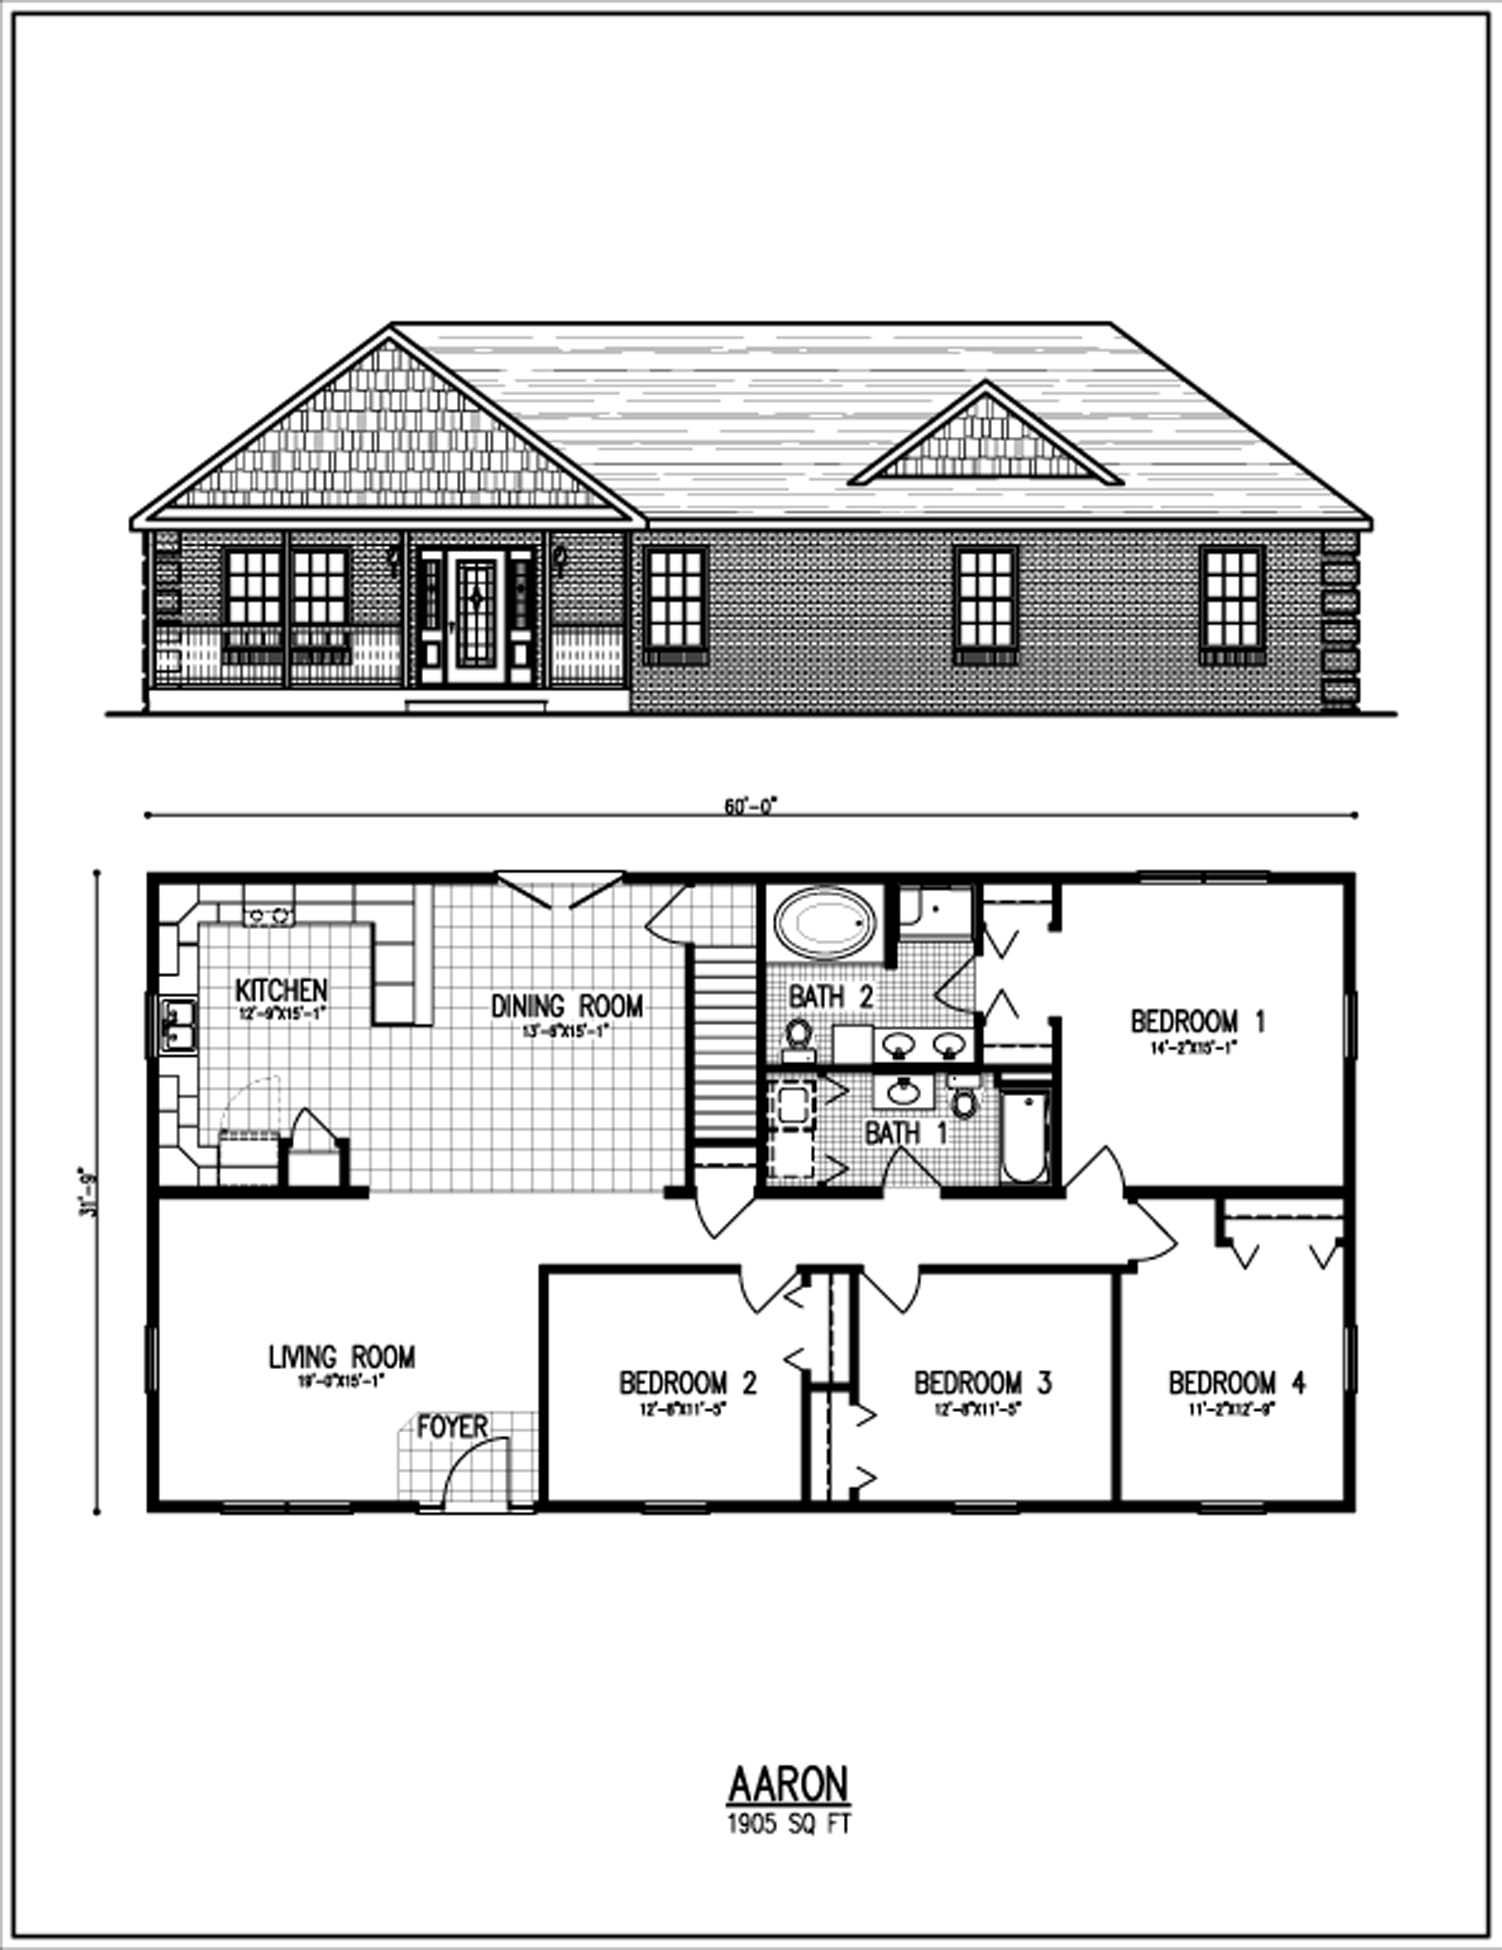 All american homes floorplan center staffordcape for American home design plans